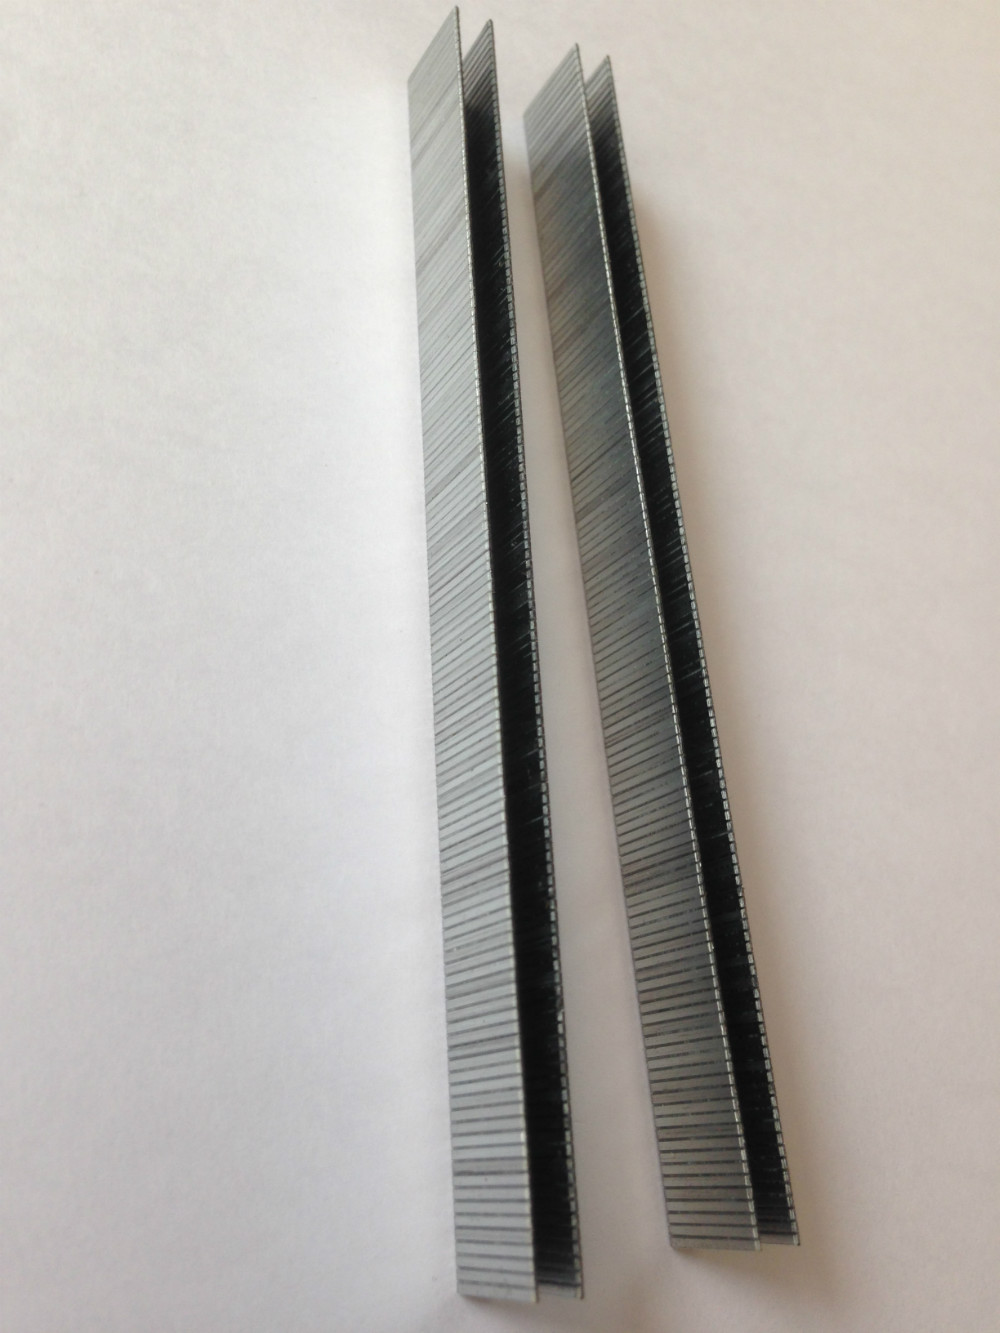 Hlwj galvanized wire high efficient cost 9712 industrial staple